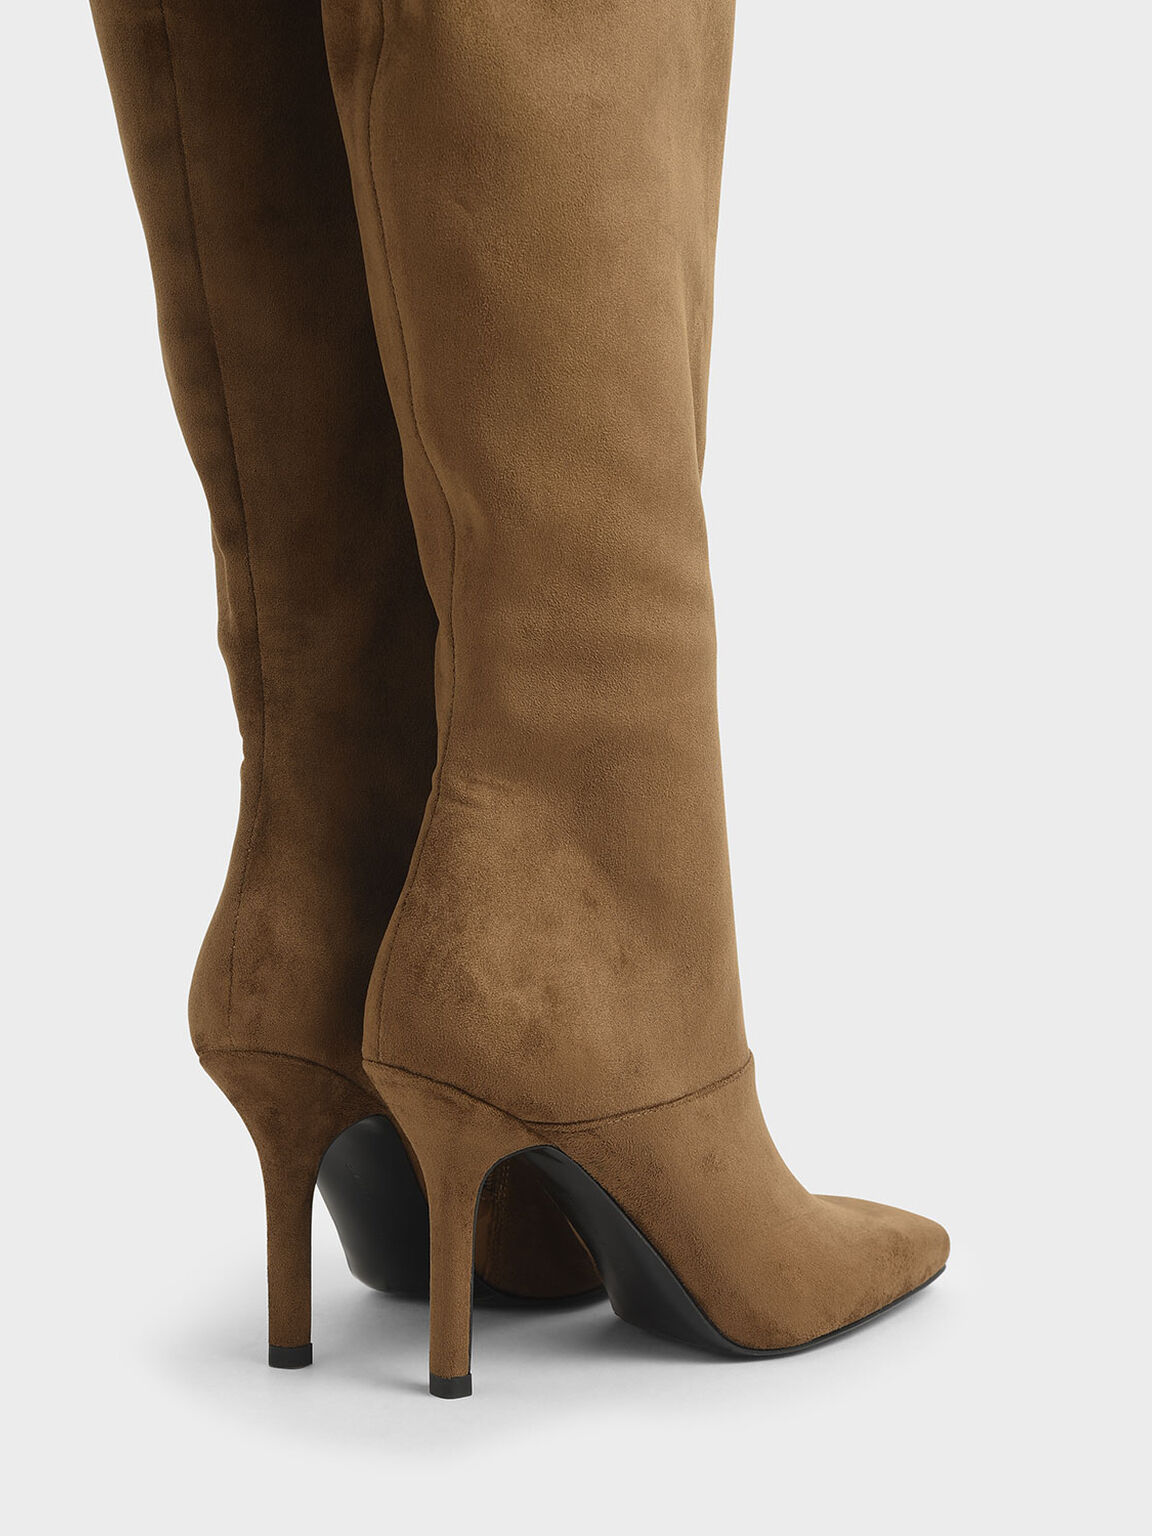 Textured Knee High Boots, Brown, hi-res